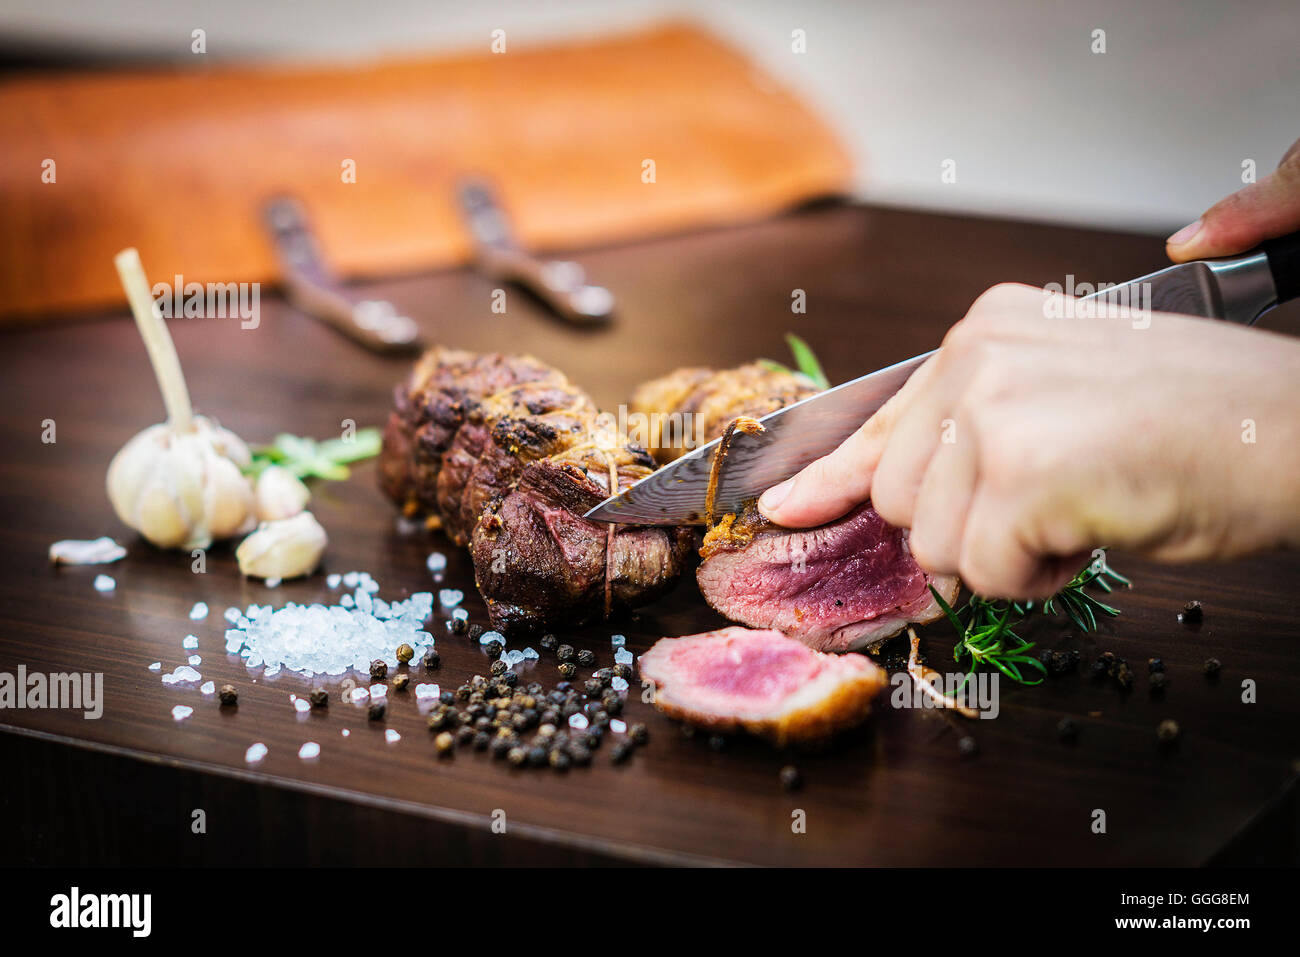 serving carving roast pork meat roll meal in rustic style with seasonings - Stock Image